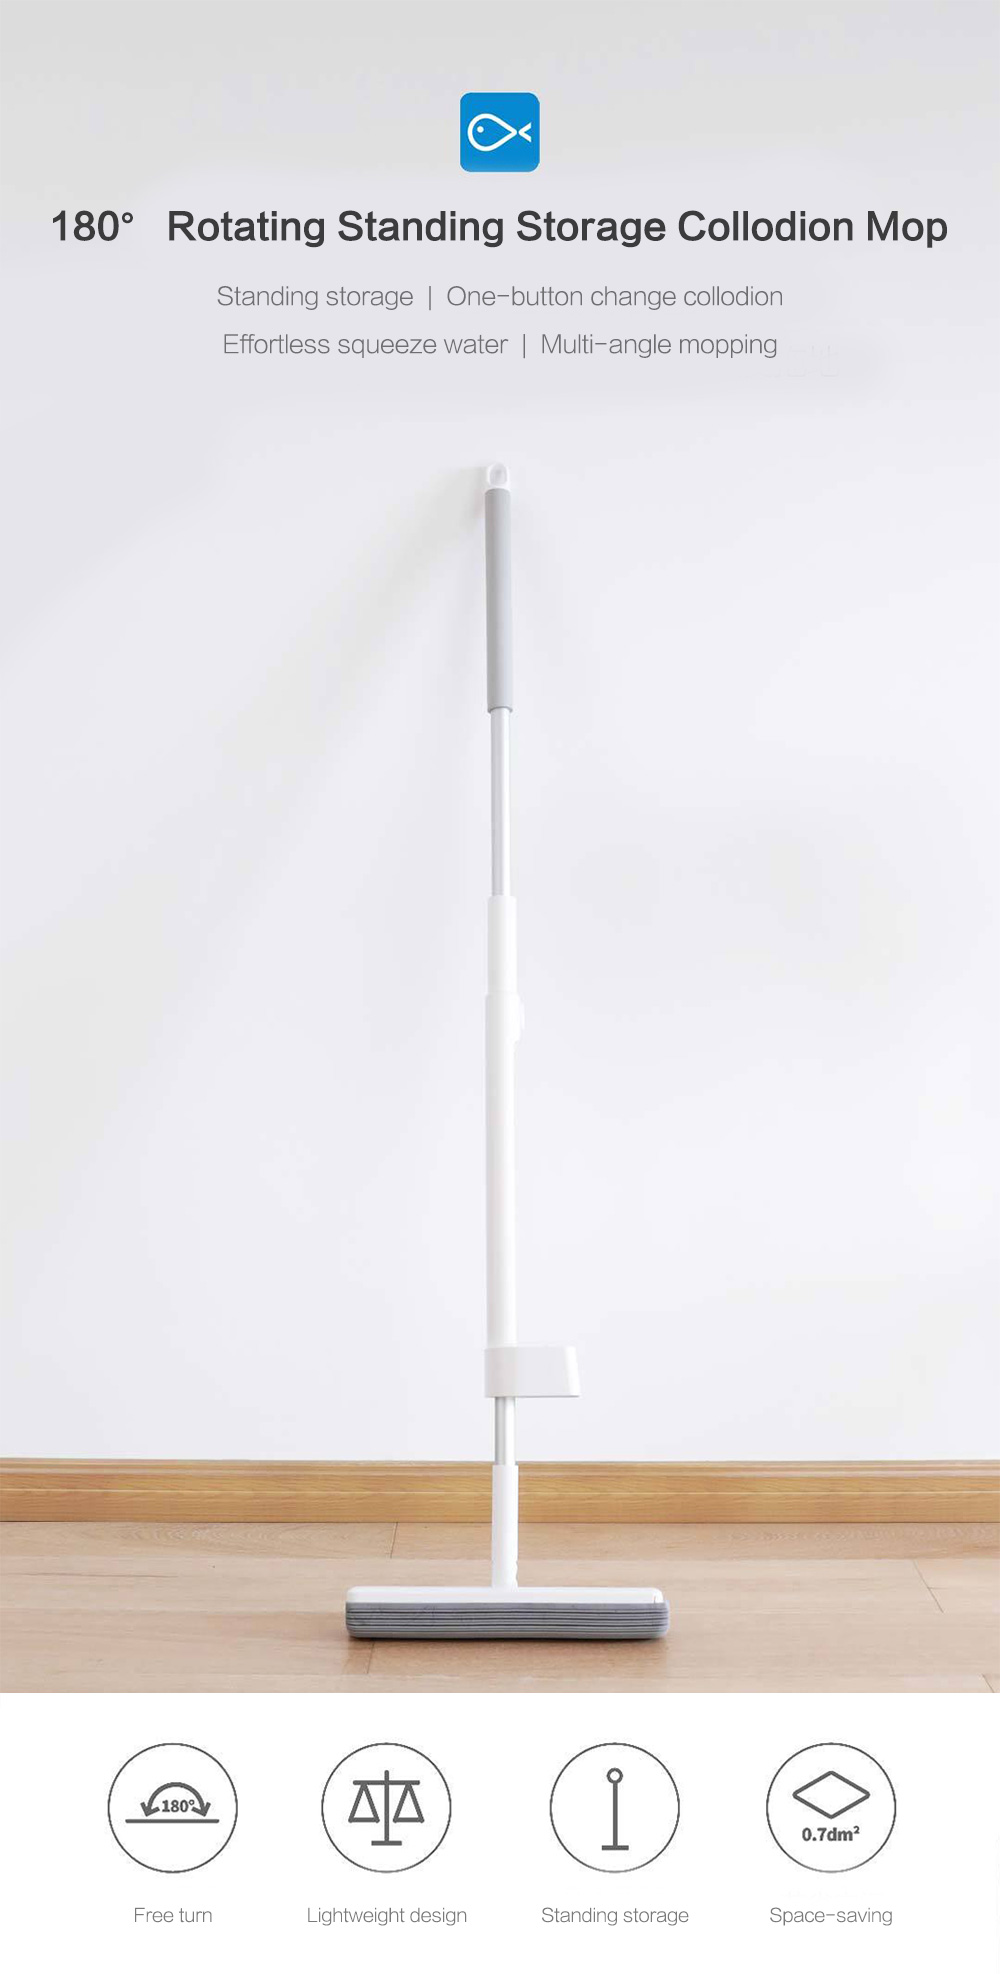 180-degree Rotating Standing Storage Space-saving Mop with Collodion Head from Xiaomi Youpin- White